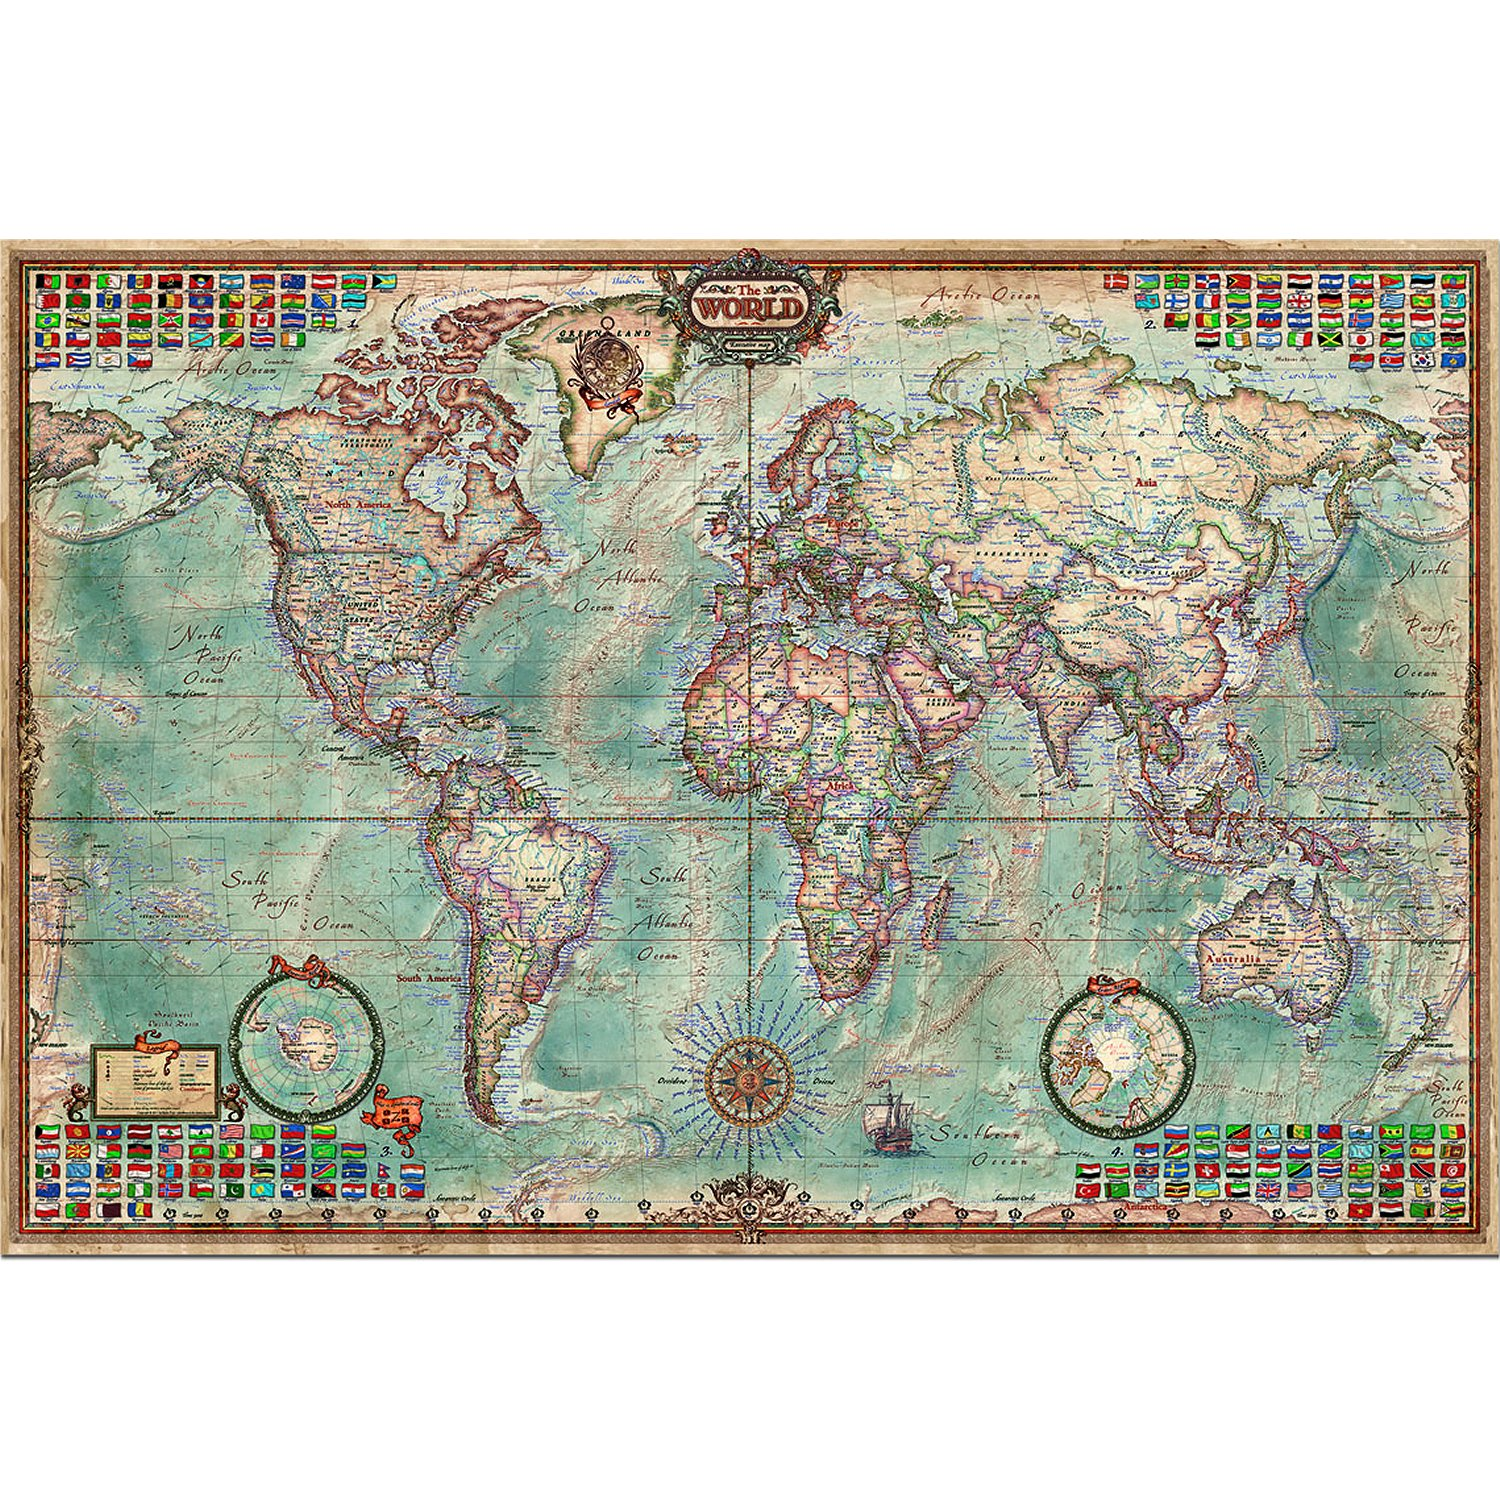 Jigsaw puzzle 4000 pieces world map educa 14827 4000 pieces jigsaw puzzle 4000 pieces world map gumiabroncs